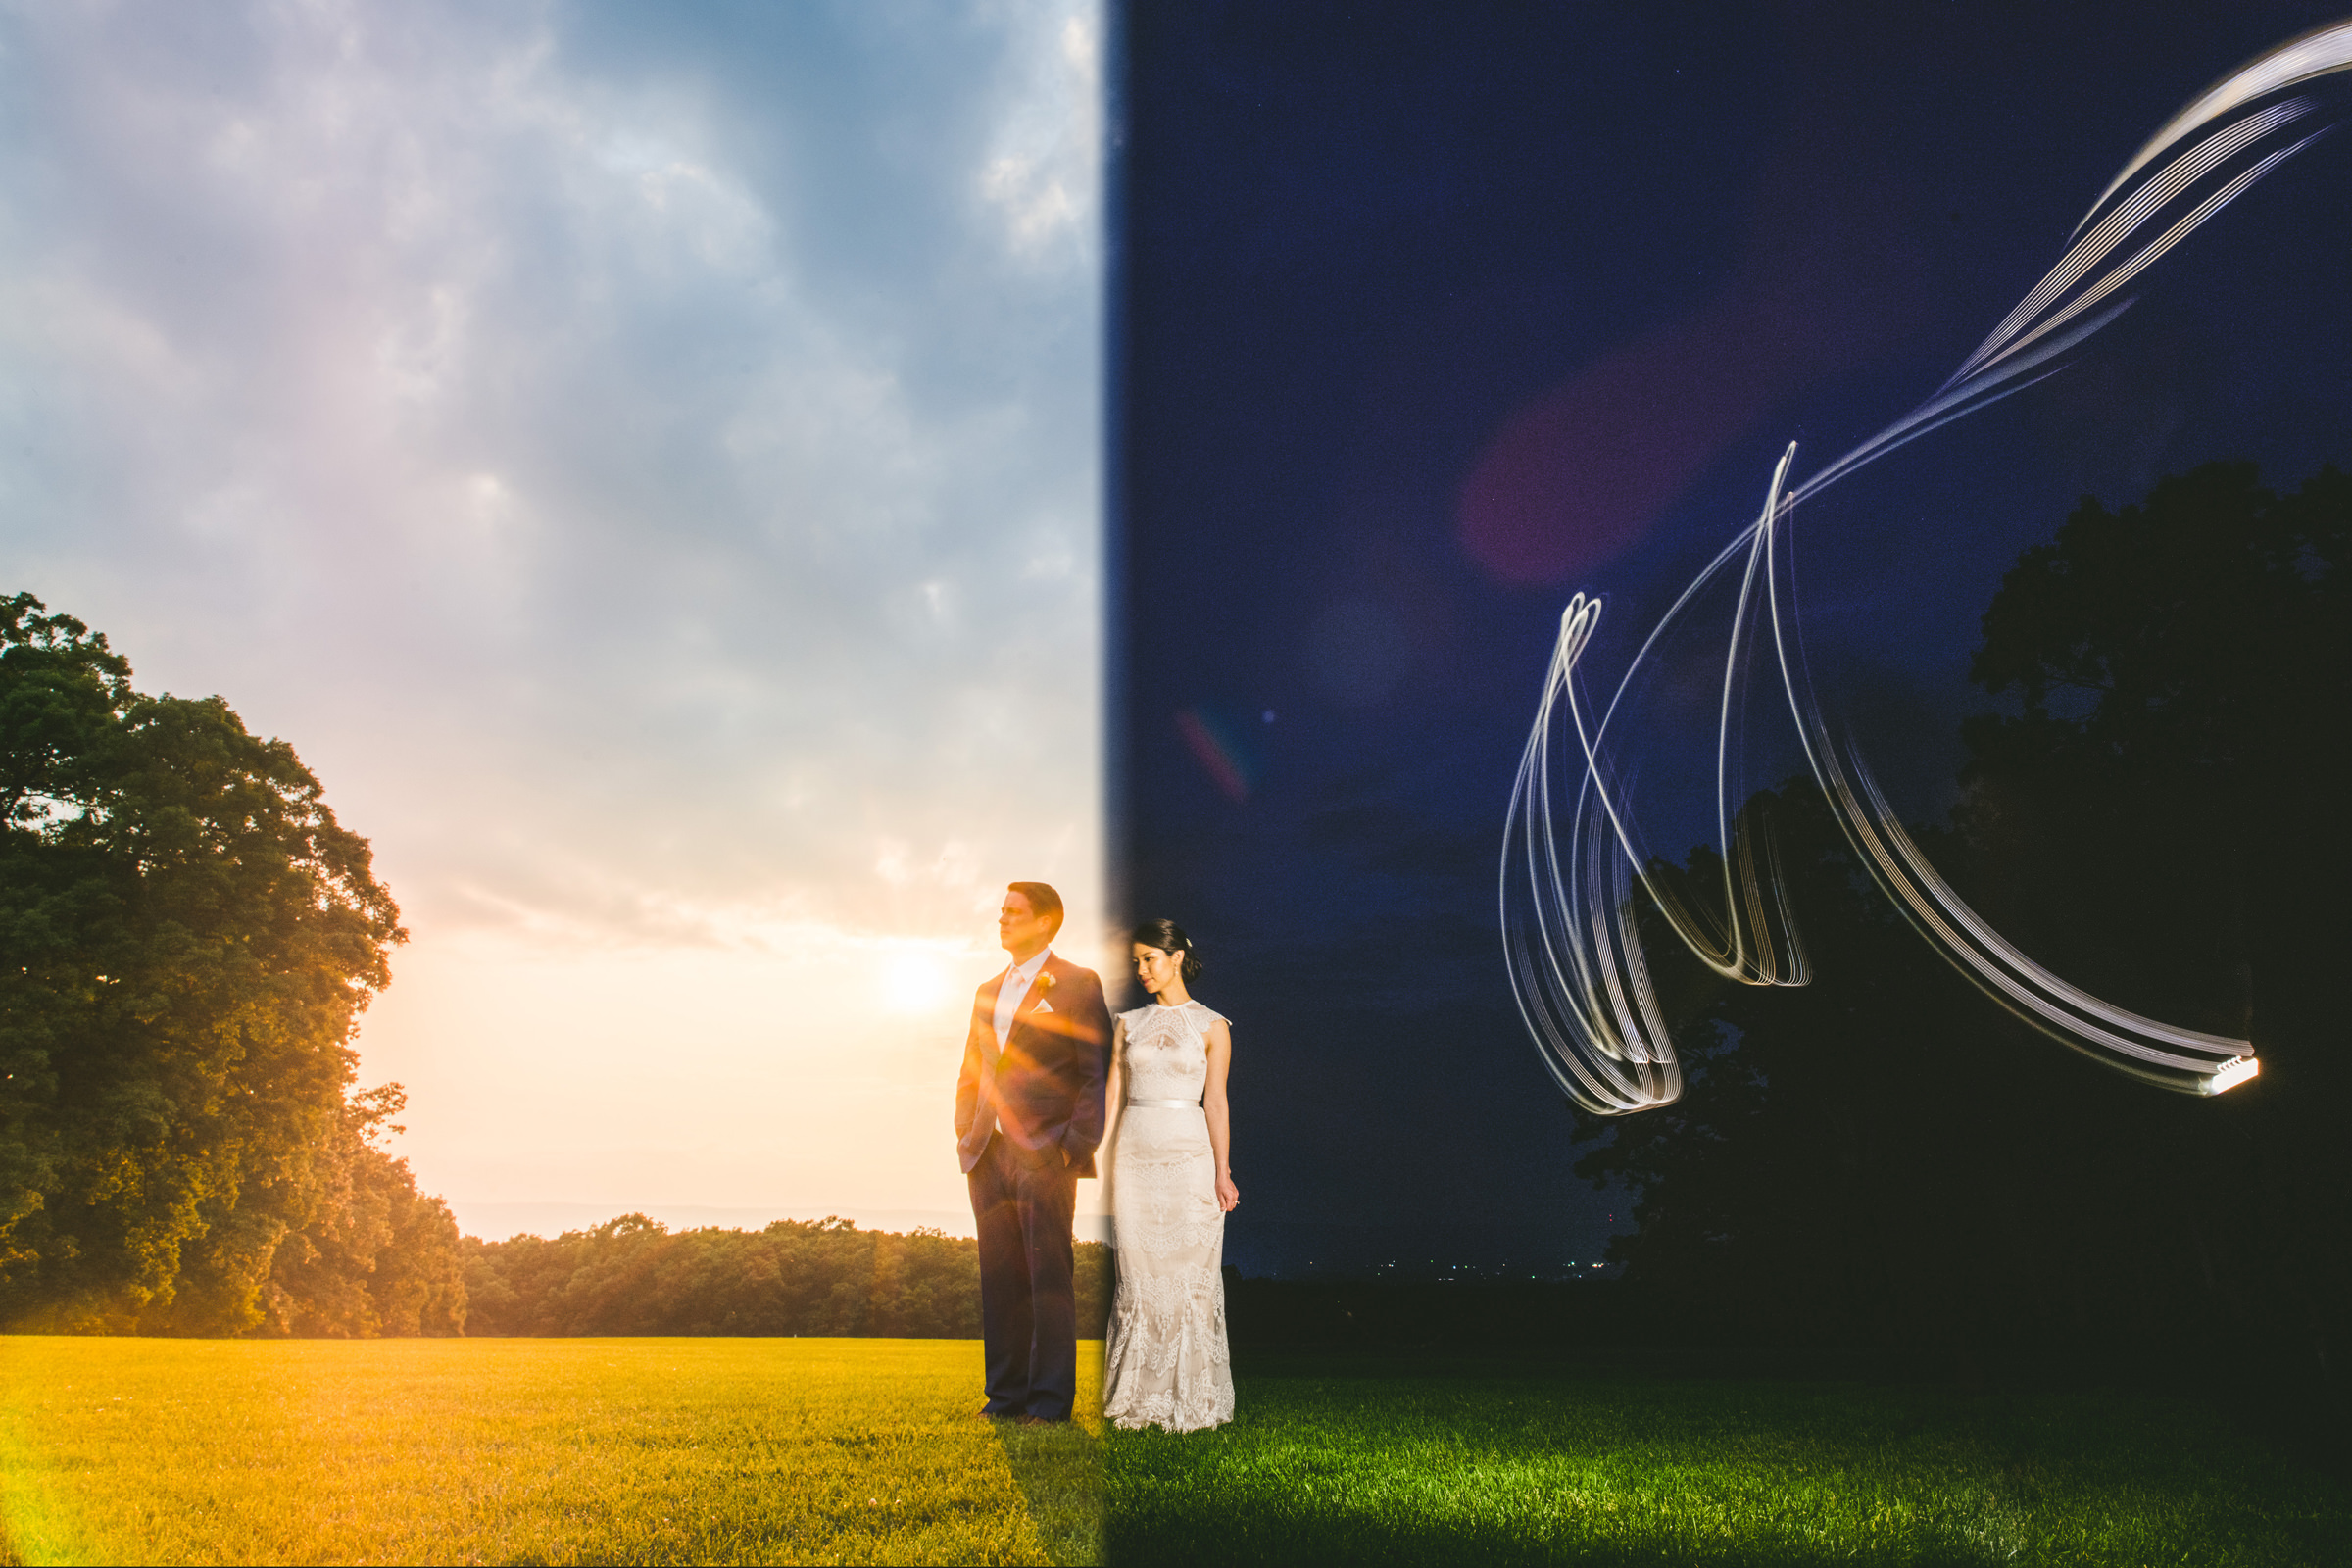 50-best-wedding-photo-concepts-of-the-decade-photo-by-sam-hurd-photography